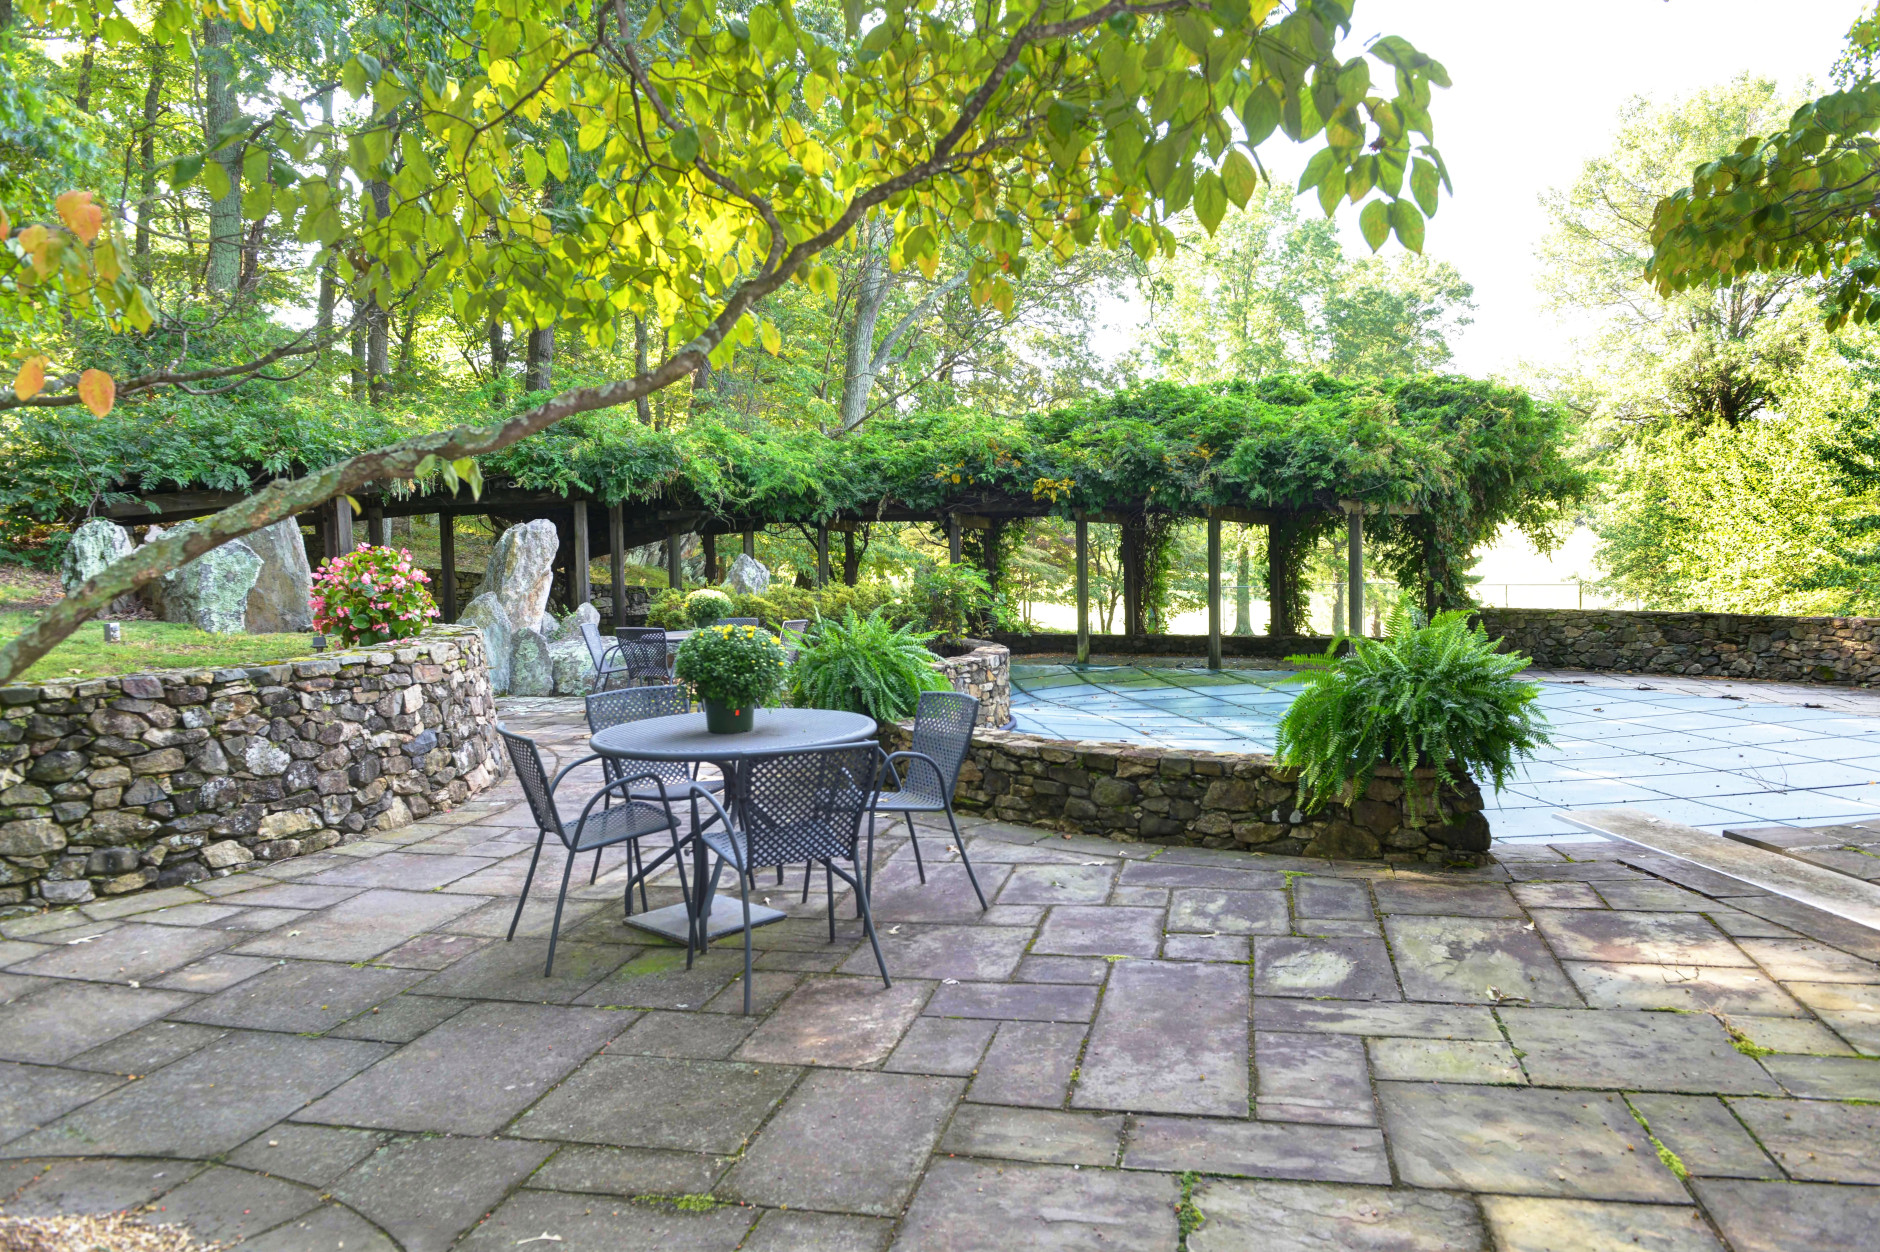 This photo provided by Thomas and Talbot Real Estate shows a patio at the Wexford Estate, the 1963 retreat that Jacqueline Kennedy Onassis designed for her family. The home is nestled on more than 166 acres in Virginia's hunt country.  (Courtesy Thomas and Talbot Real Estate and Mona Botwick Photography)